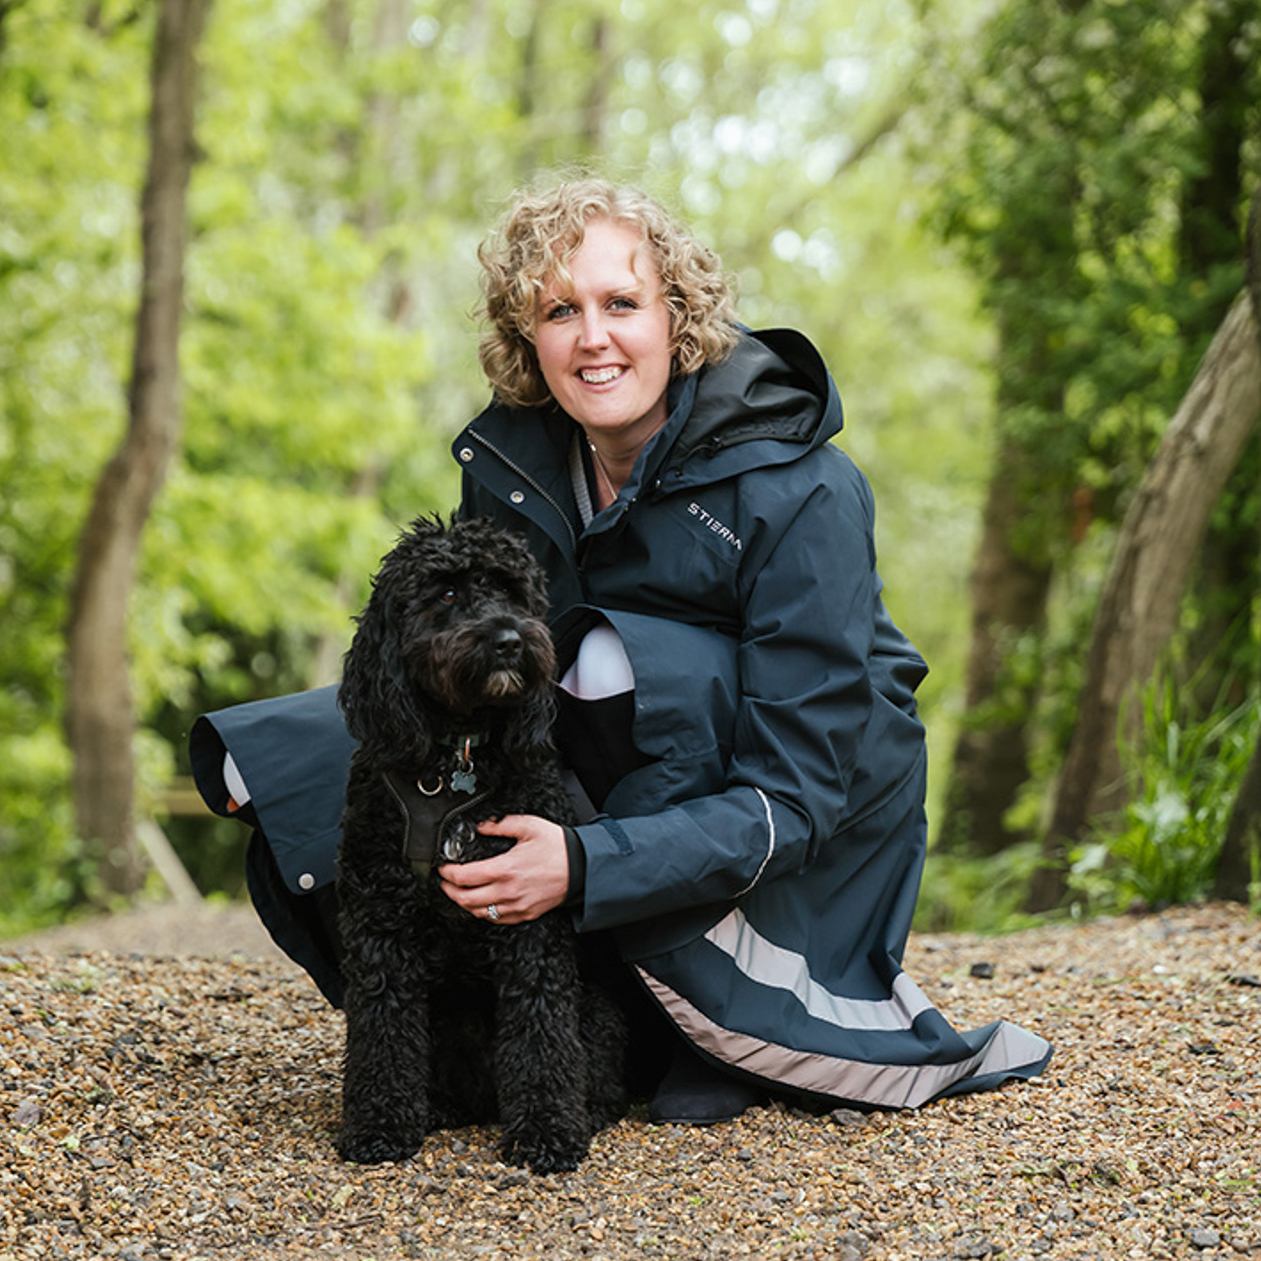 Jenni Winter-Leach Flying Changes Mindset & Performance with Hugo the Sproodle